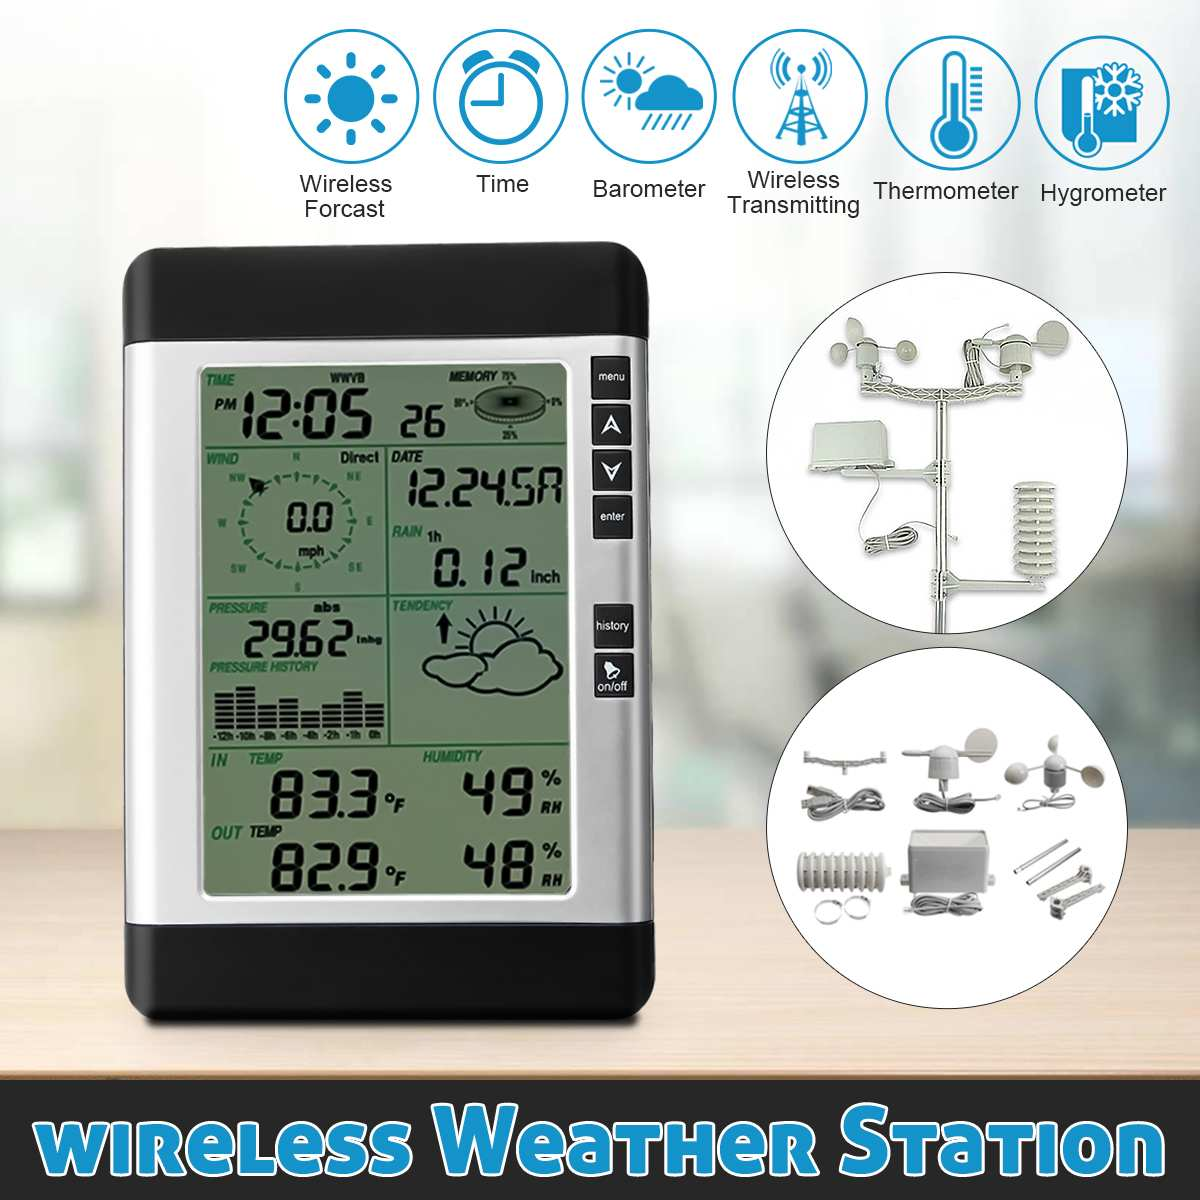 USB Wireless Weather Station& Household LCD Thermometer Hygrometer Forecast Sensor Barometric Pressure Weather Forecast Clock hongyang t18040 1 5 lcd weather forecast thermometer hygrometer blue black